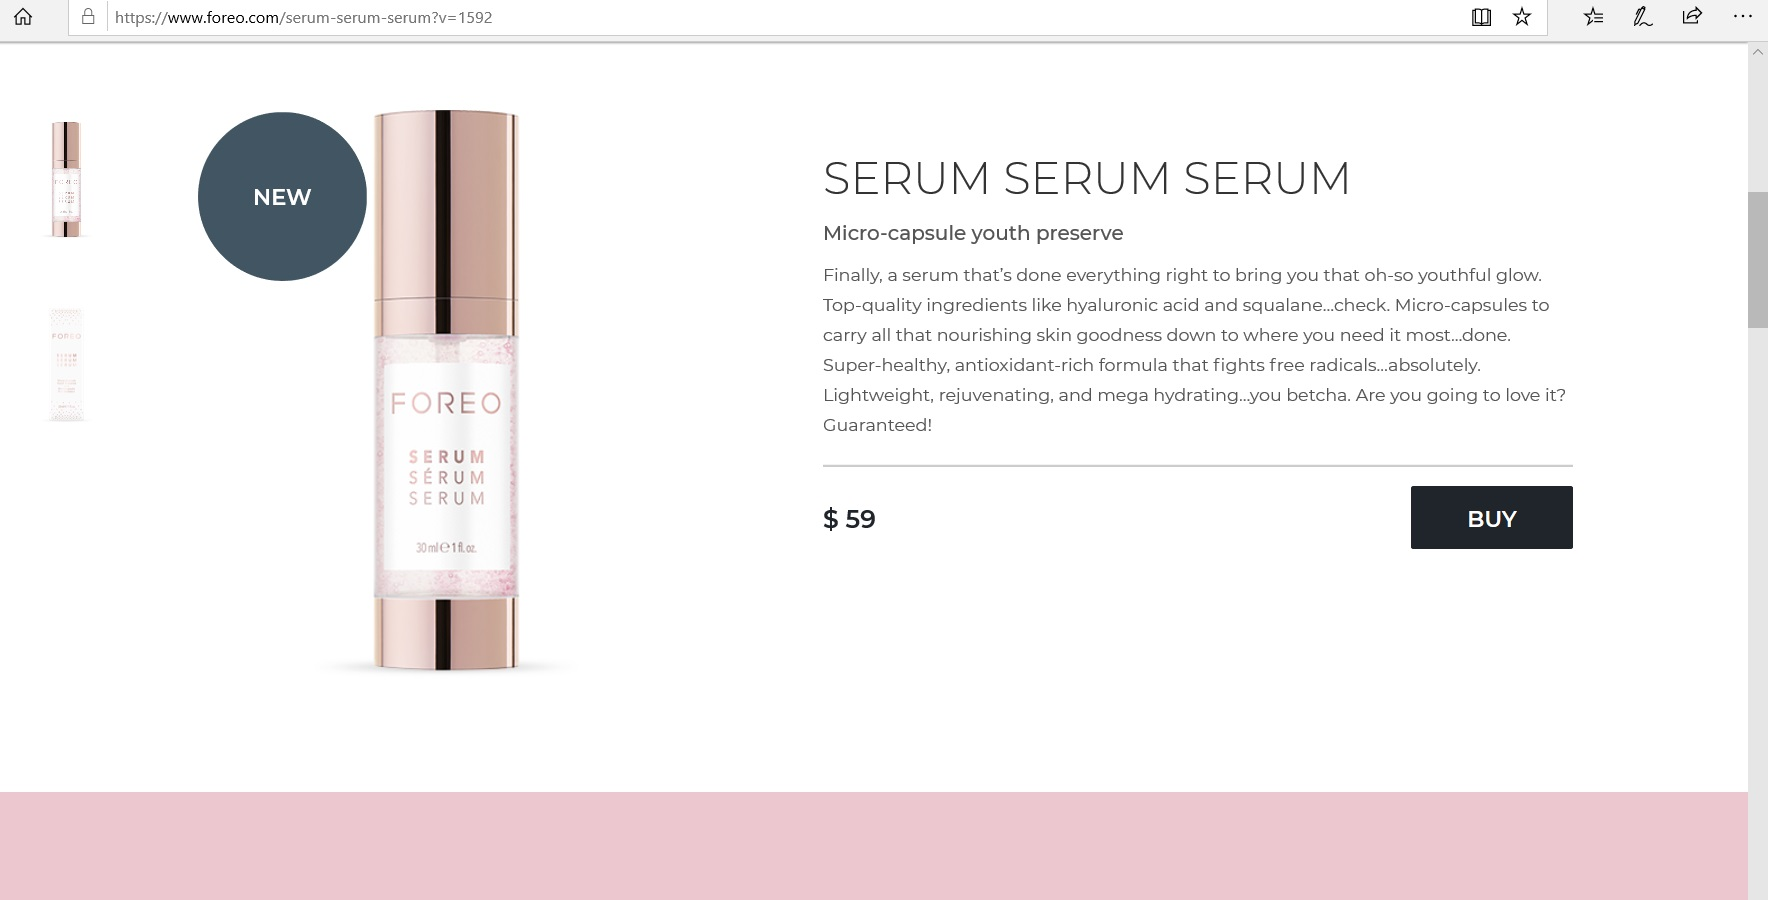 Product description of a FOREO serum.